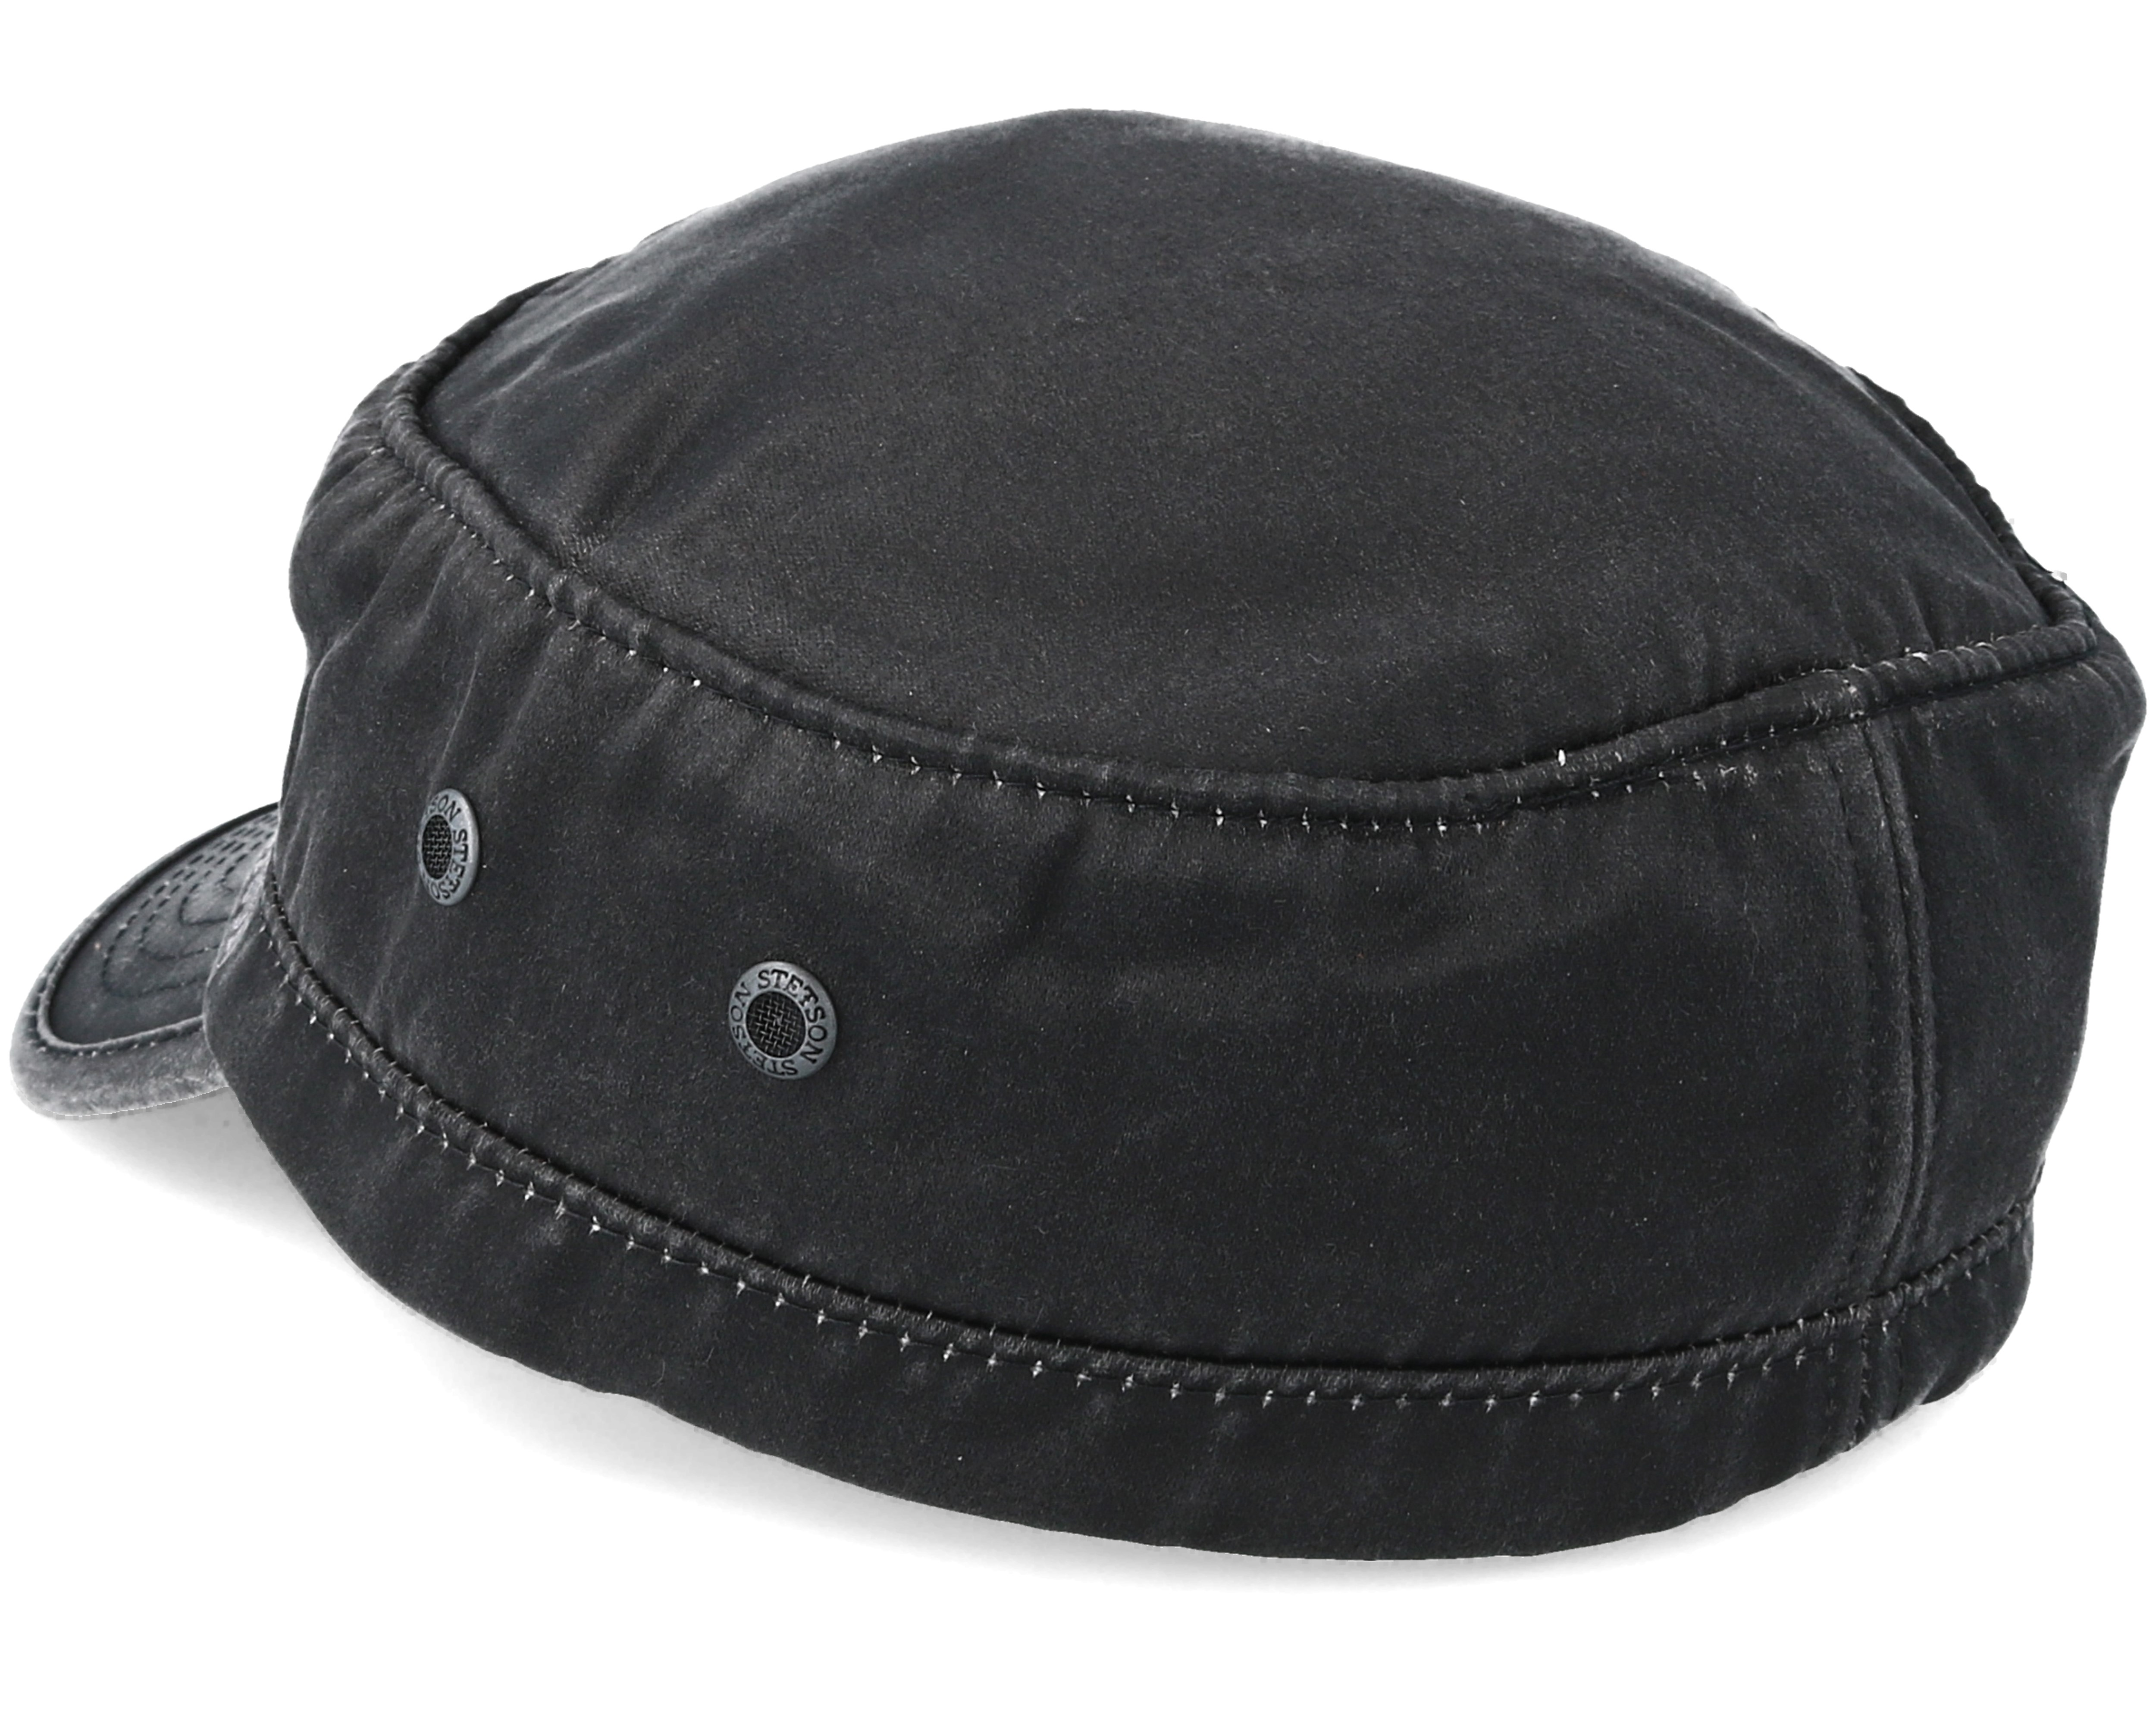 6929ae51 Army Cap Co/Pes Black Fitted - Stetson cap - Hatstore.co.in